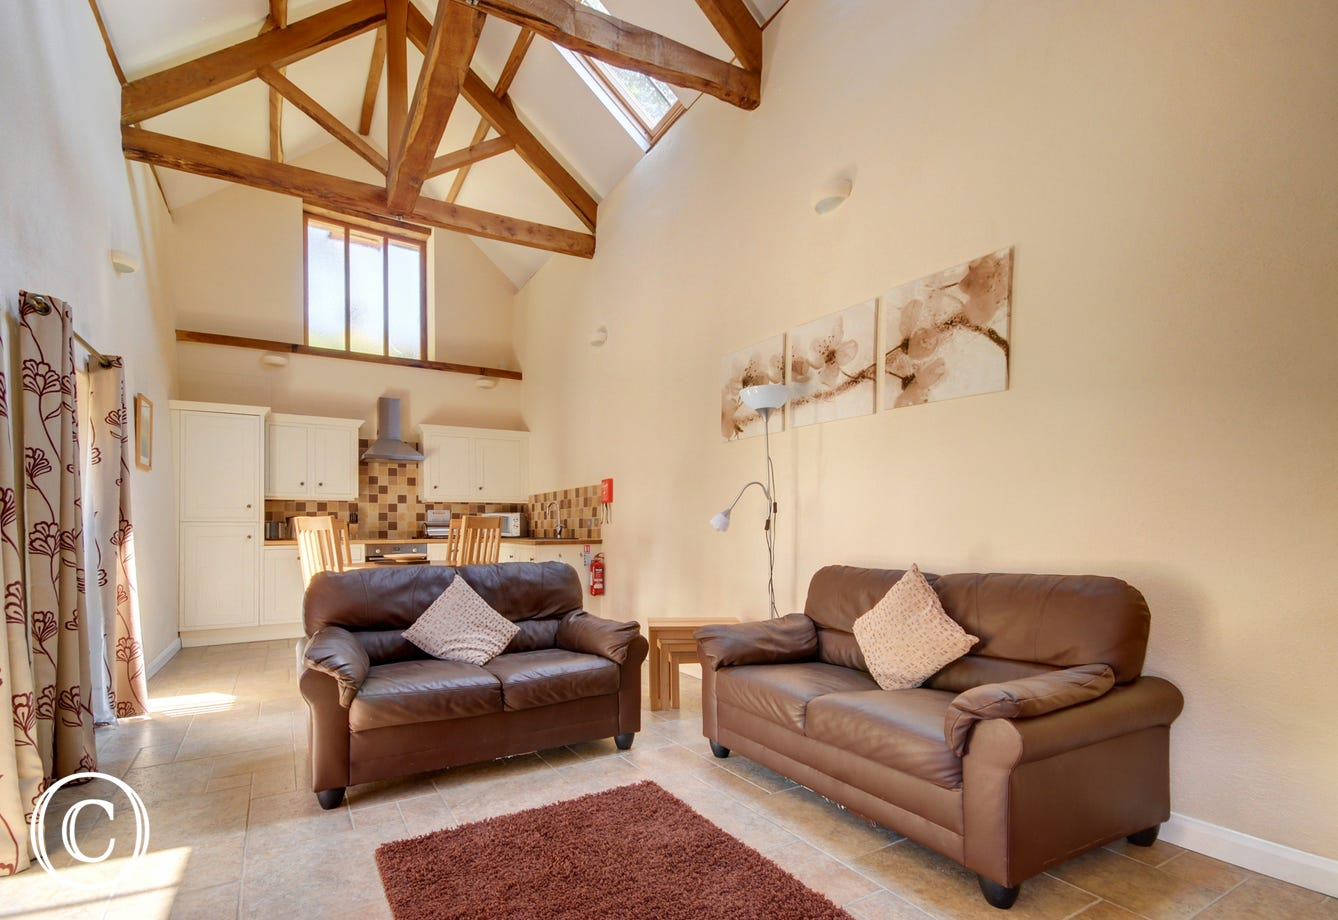 The impressive light and bright open plan living room with high vaulted oak beamed ceiling, comfy leather sofas and country cream kitchen has a contemporary feel